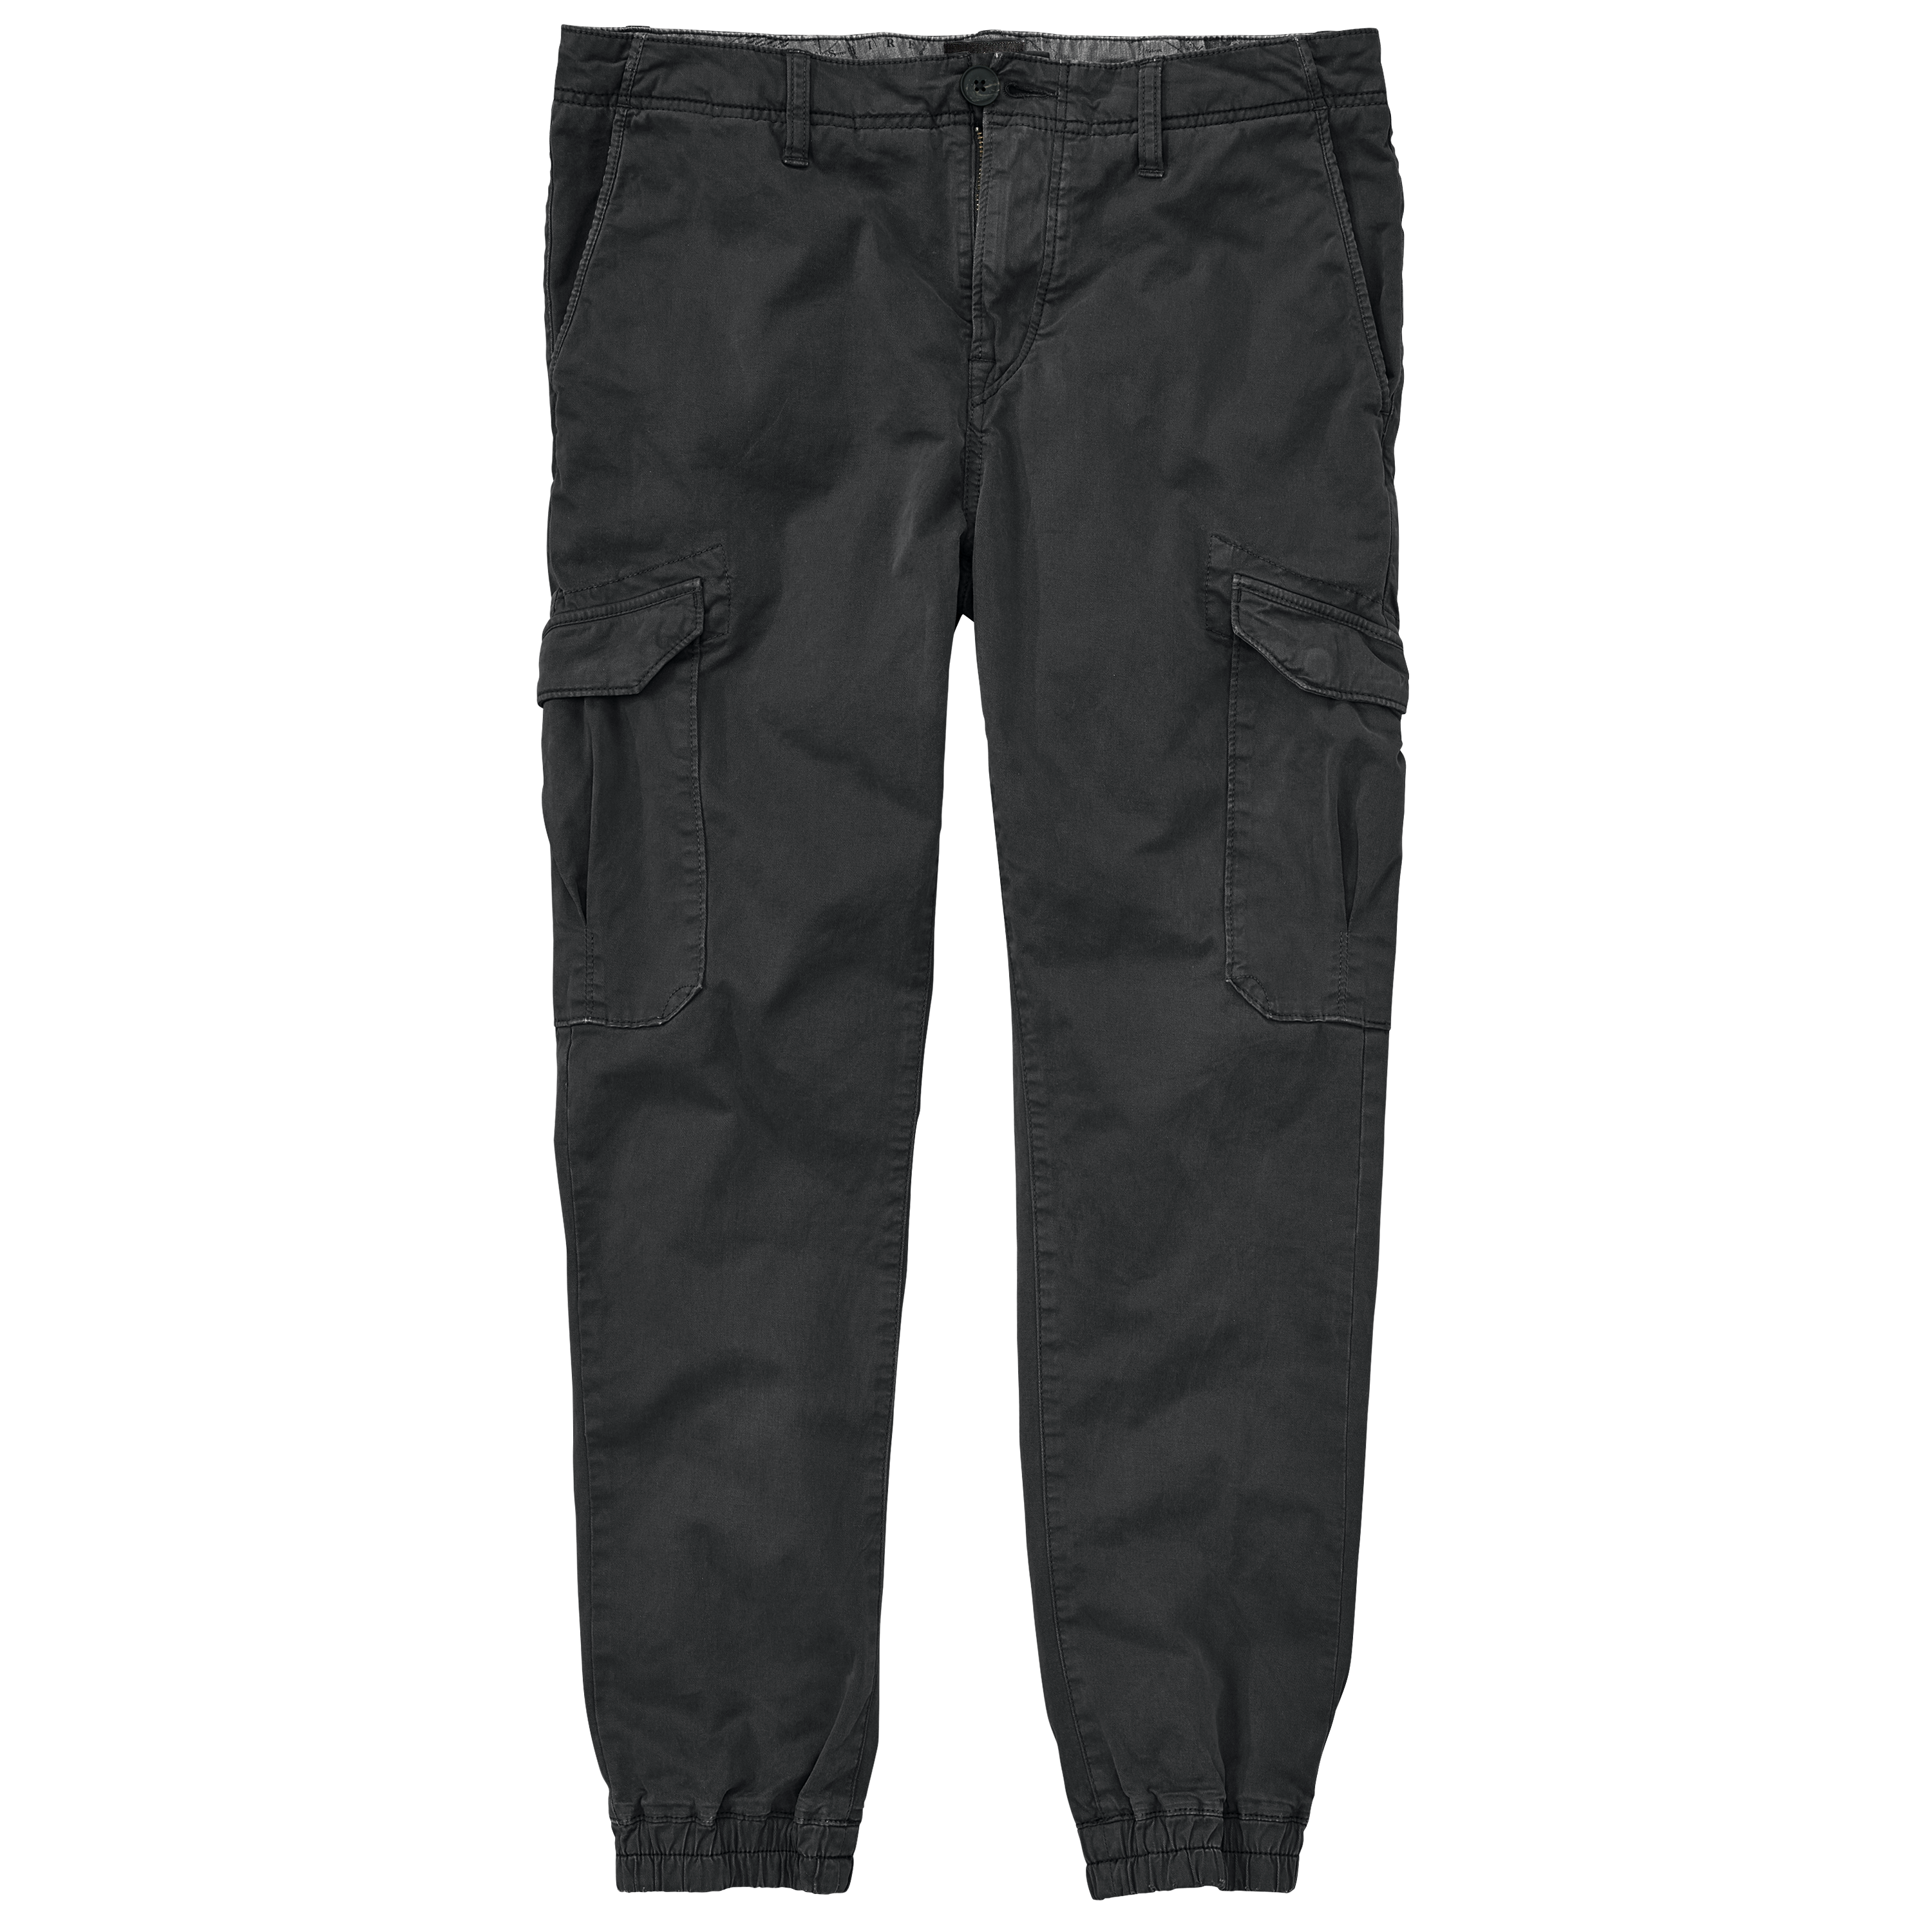 22d1c949d2 The A1LDW Lovell Lake Slim Tapered Hybrid Cargo PantsTimberland's new  tapered fit collection is a series of jogger pants that are given a modern  twist to ...